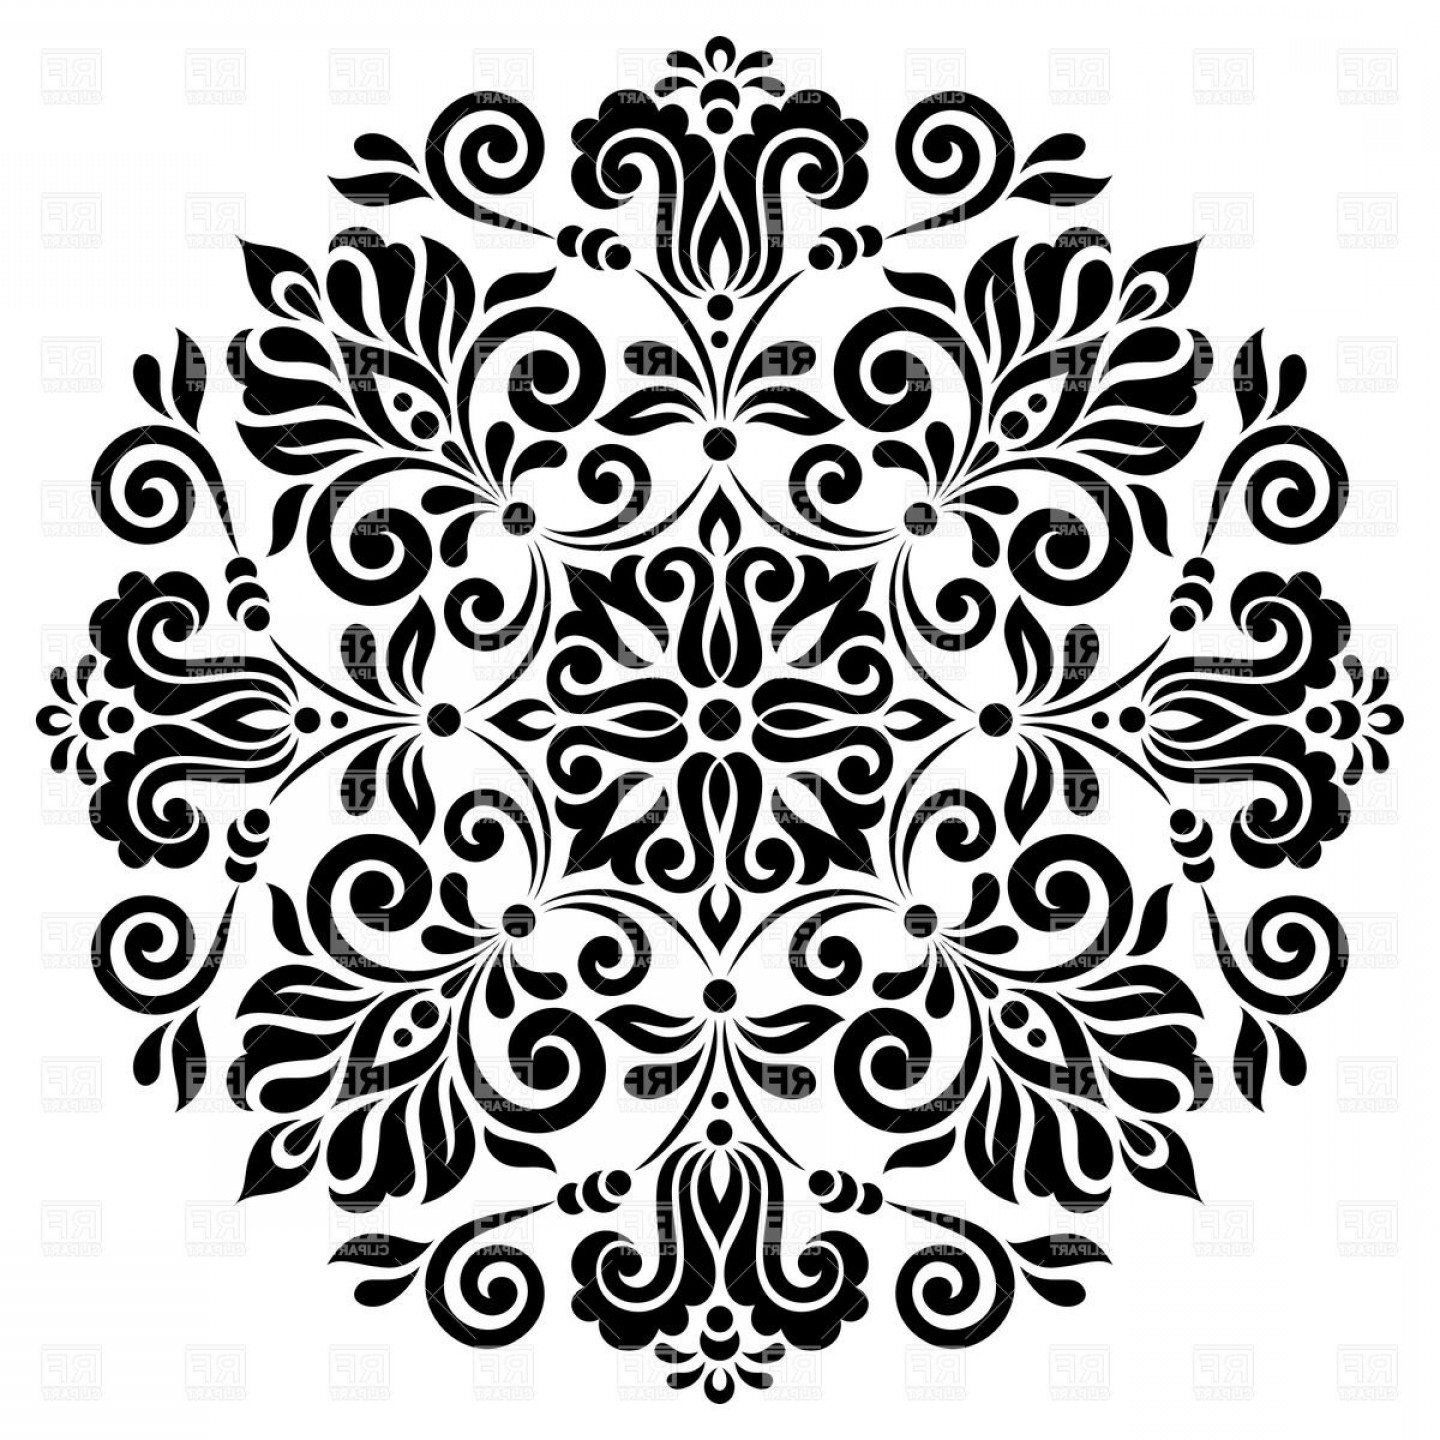 Hd Vector Flower Patterns Layout.